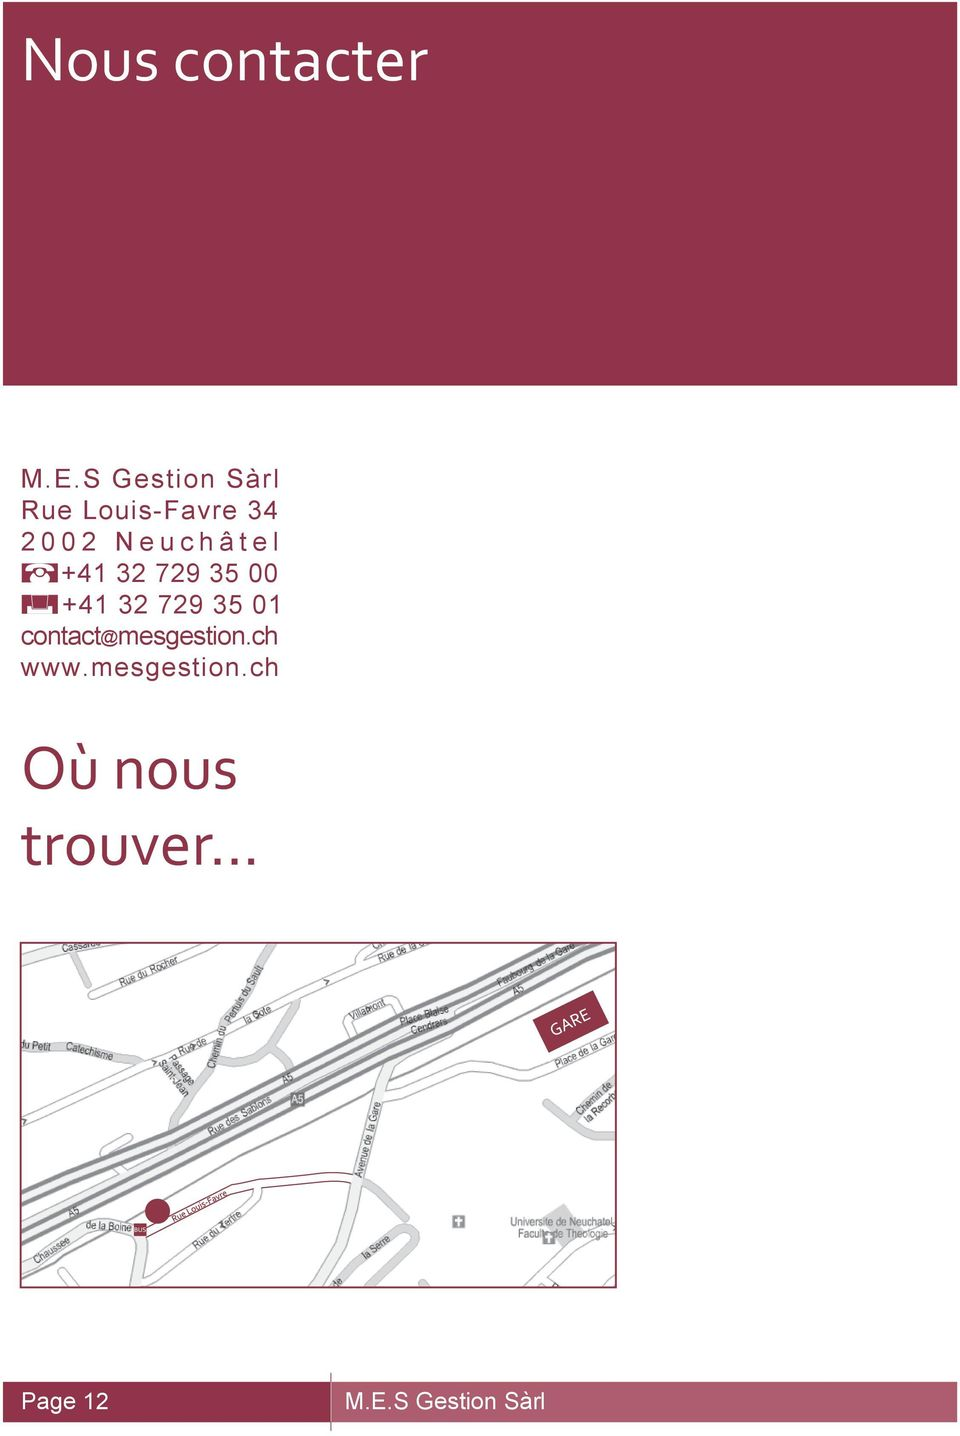 32 729 35 01 contact@mesgestion.